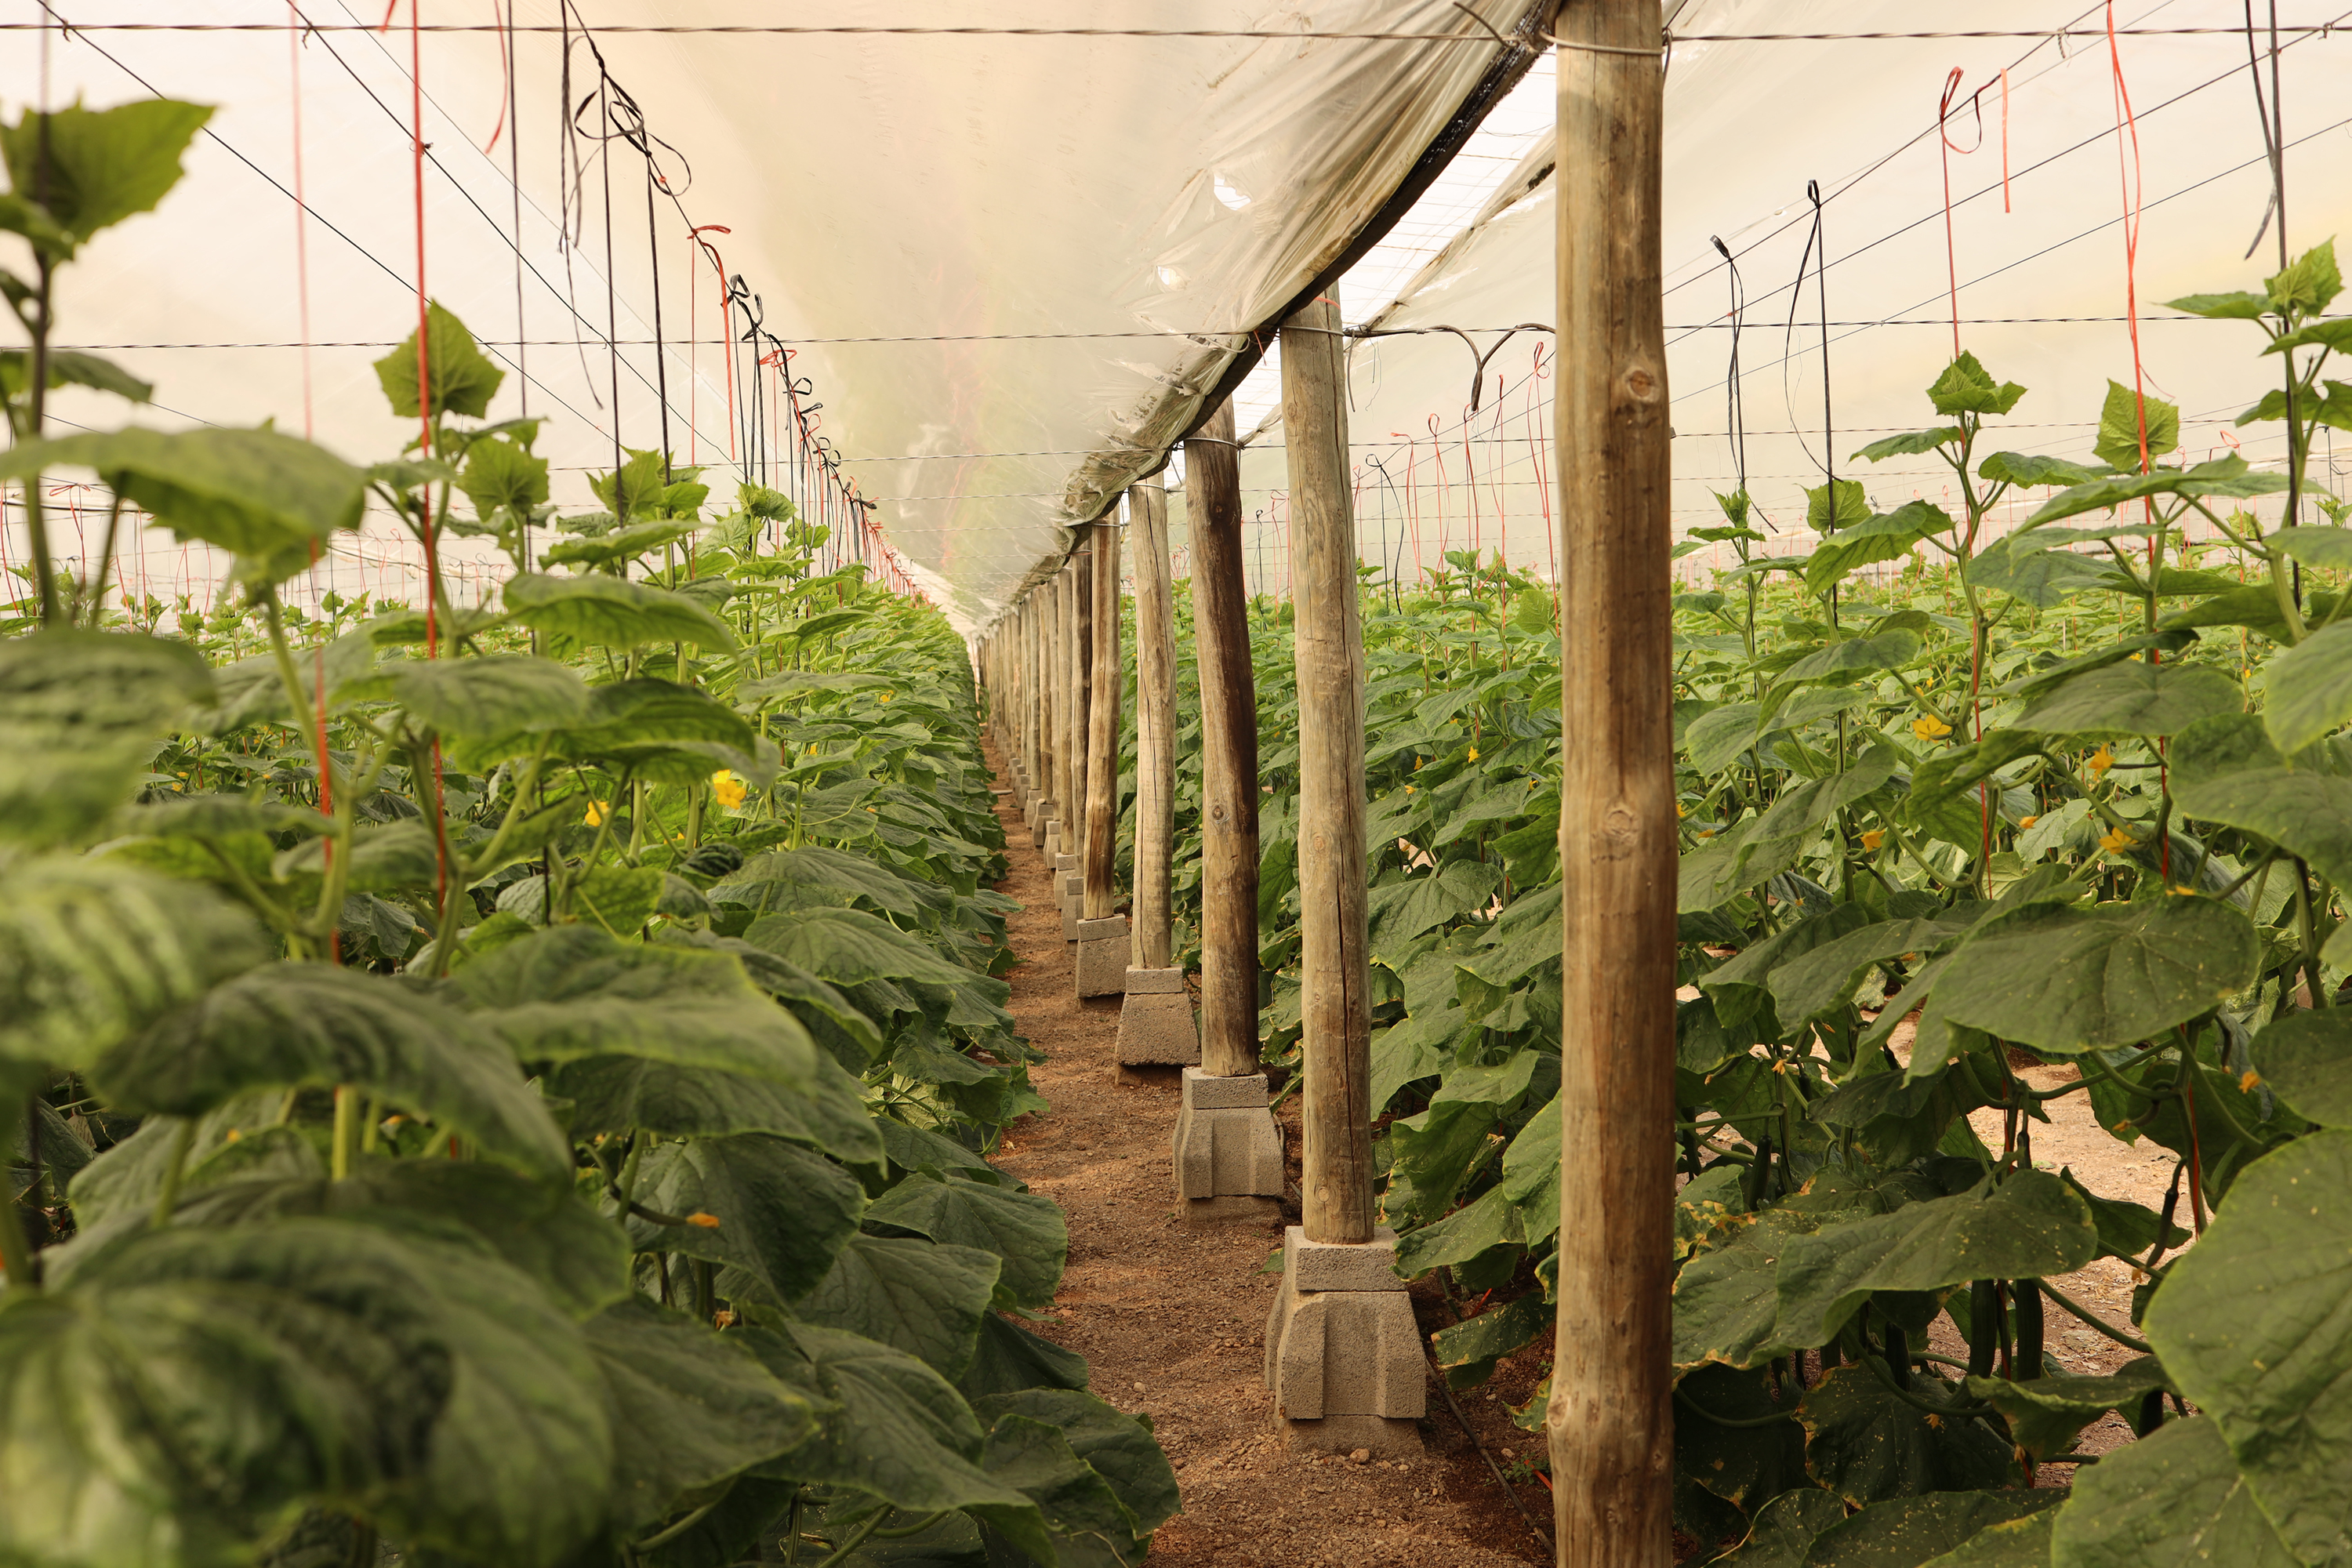 Inside a greenhouse in Almeria Spain looking down a row of plants